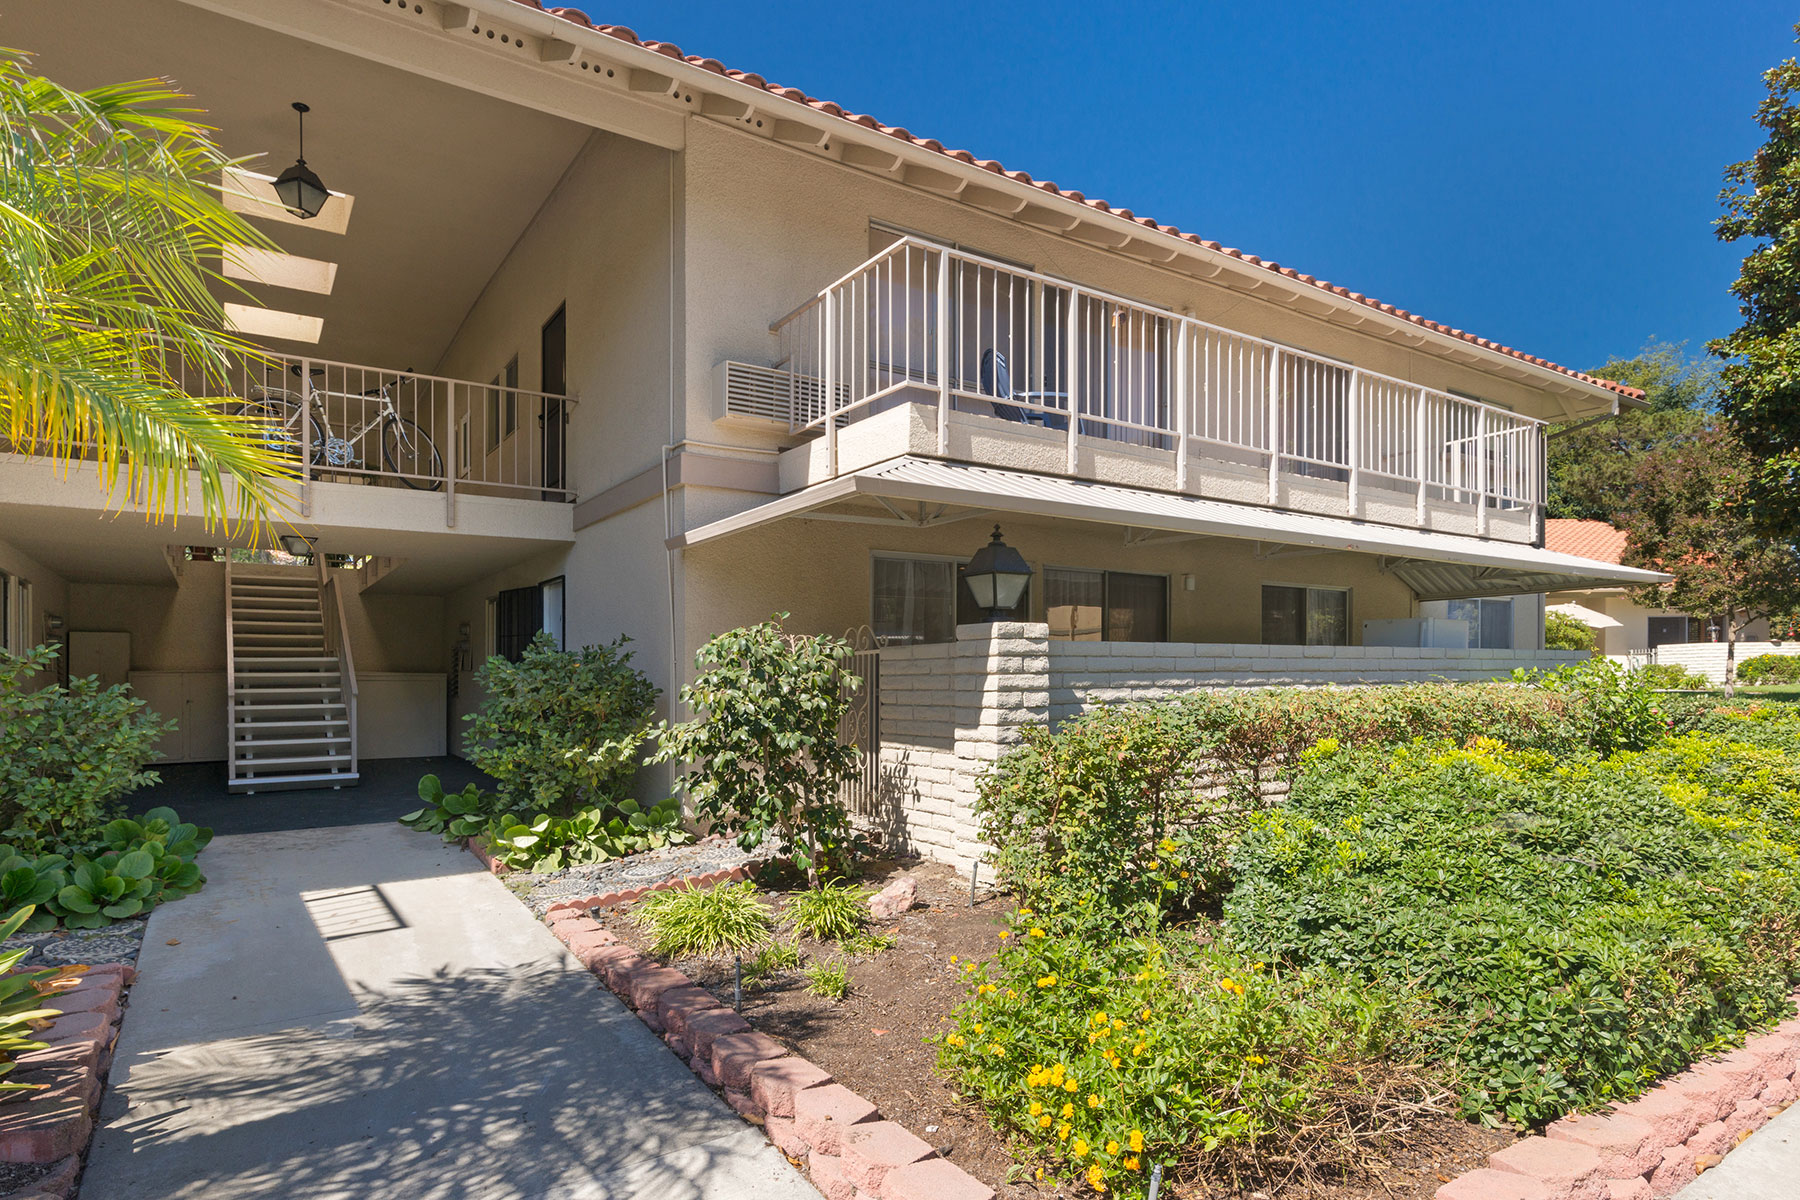 Co-op for Sale at 818 Via Alhambra A Laguna Woods, California, 92637 United States